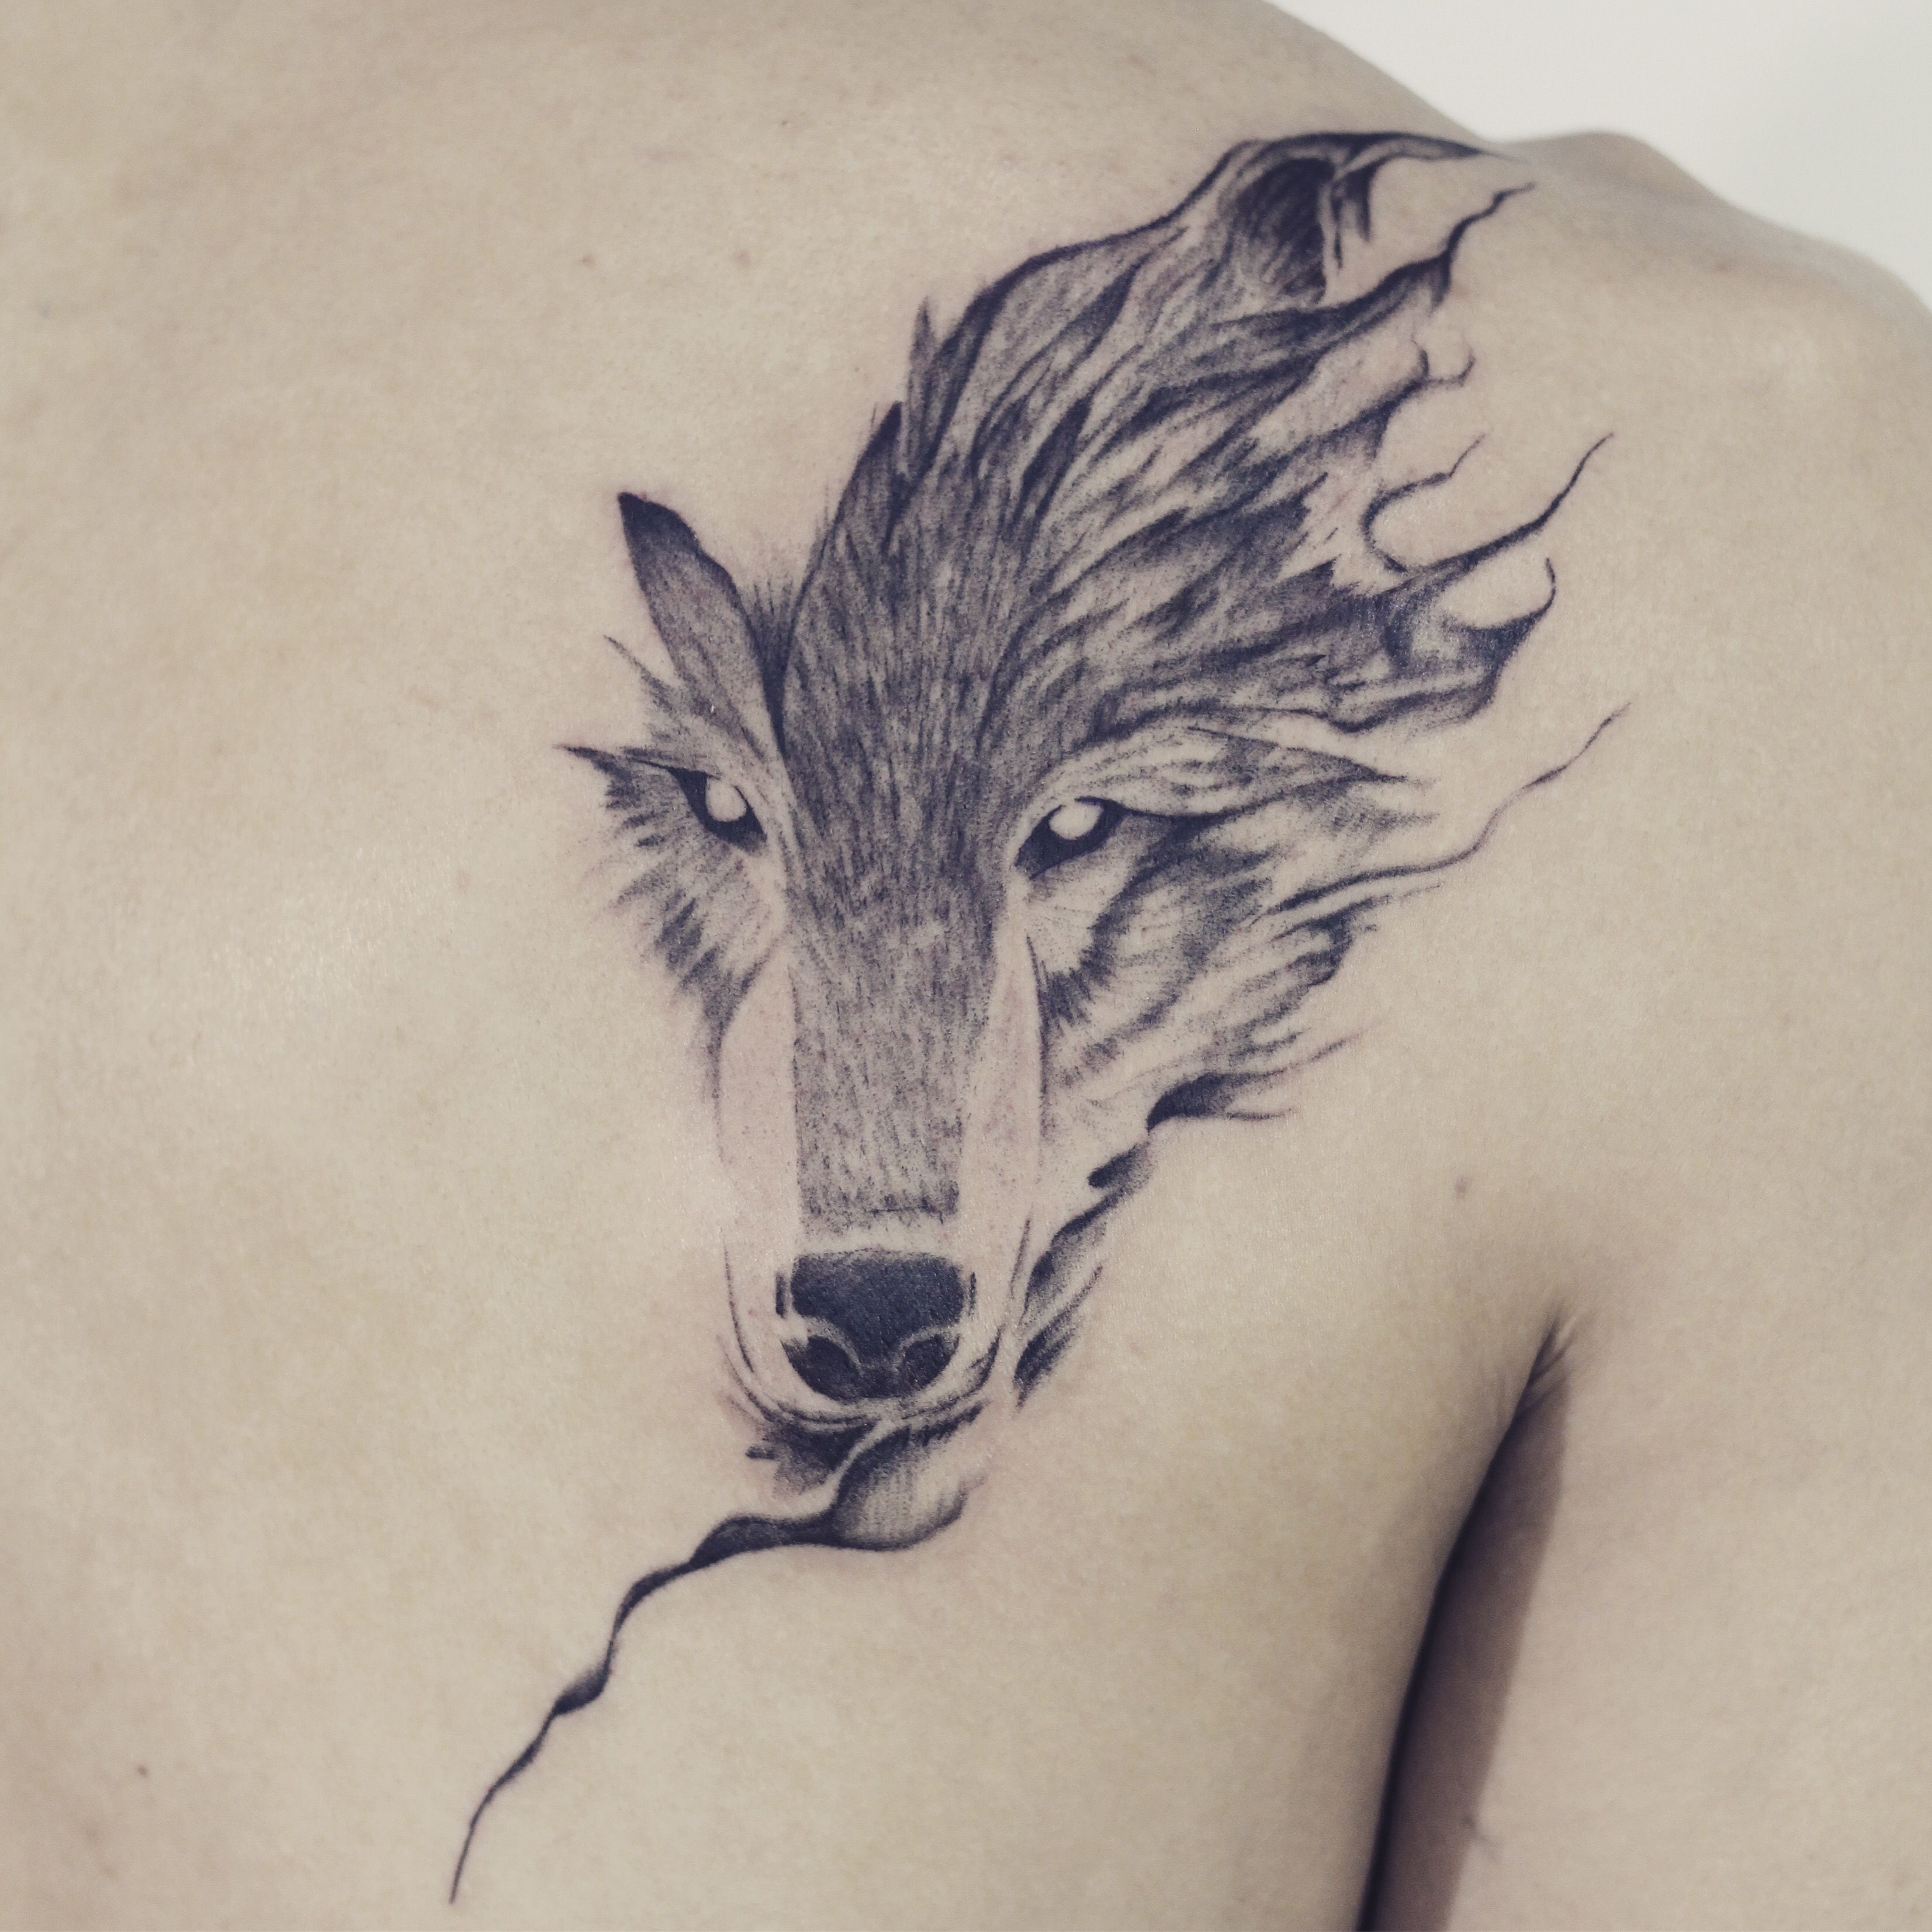 Check It Out In 2020 Animal Tattoos Wolf Face Tattoo Nature Tattoos